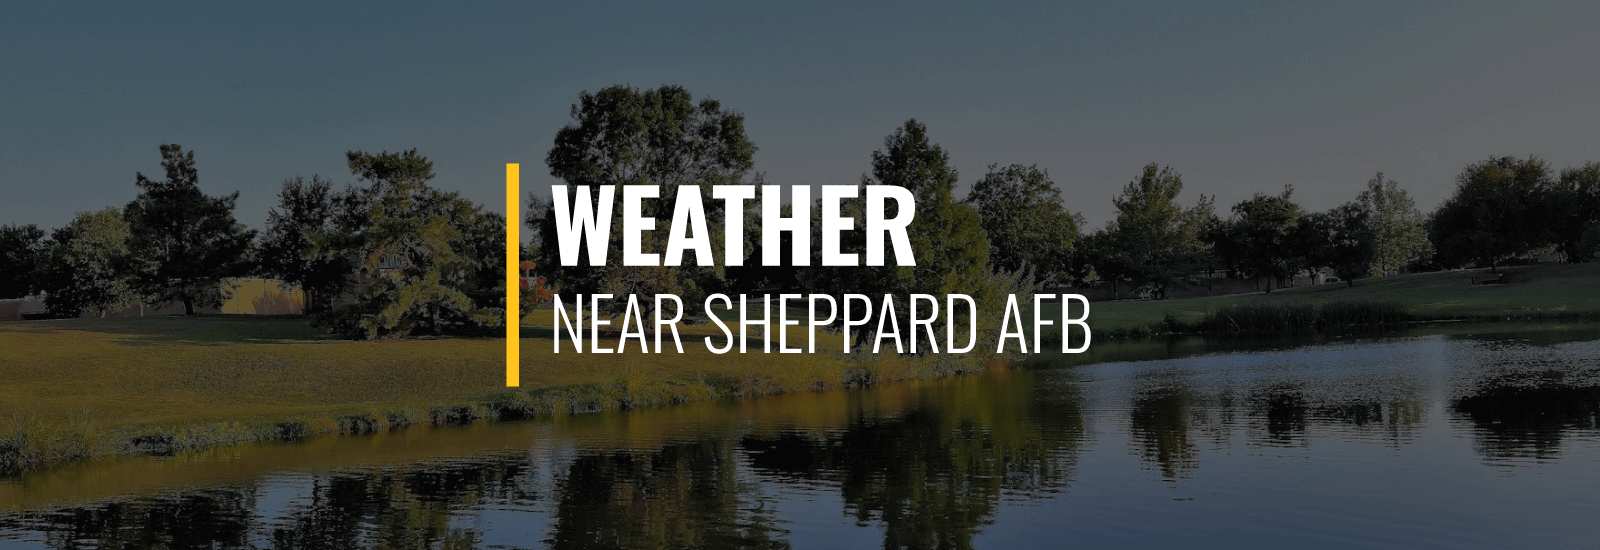 Sheppard AFB Weather